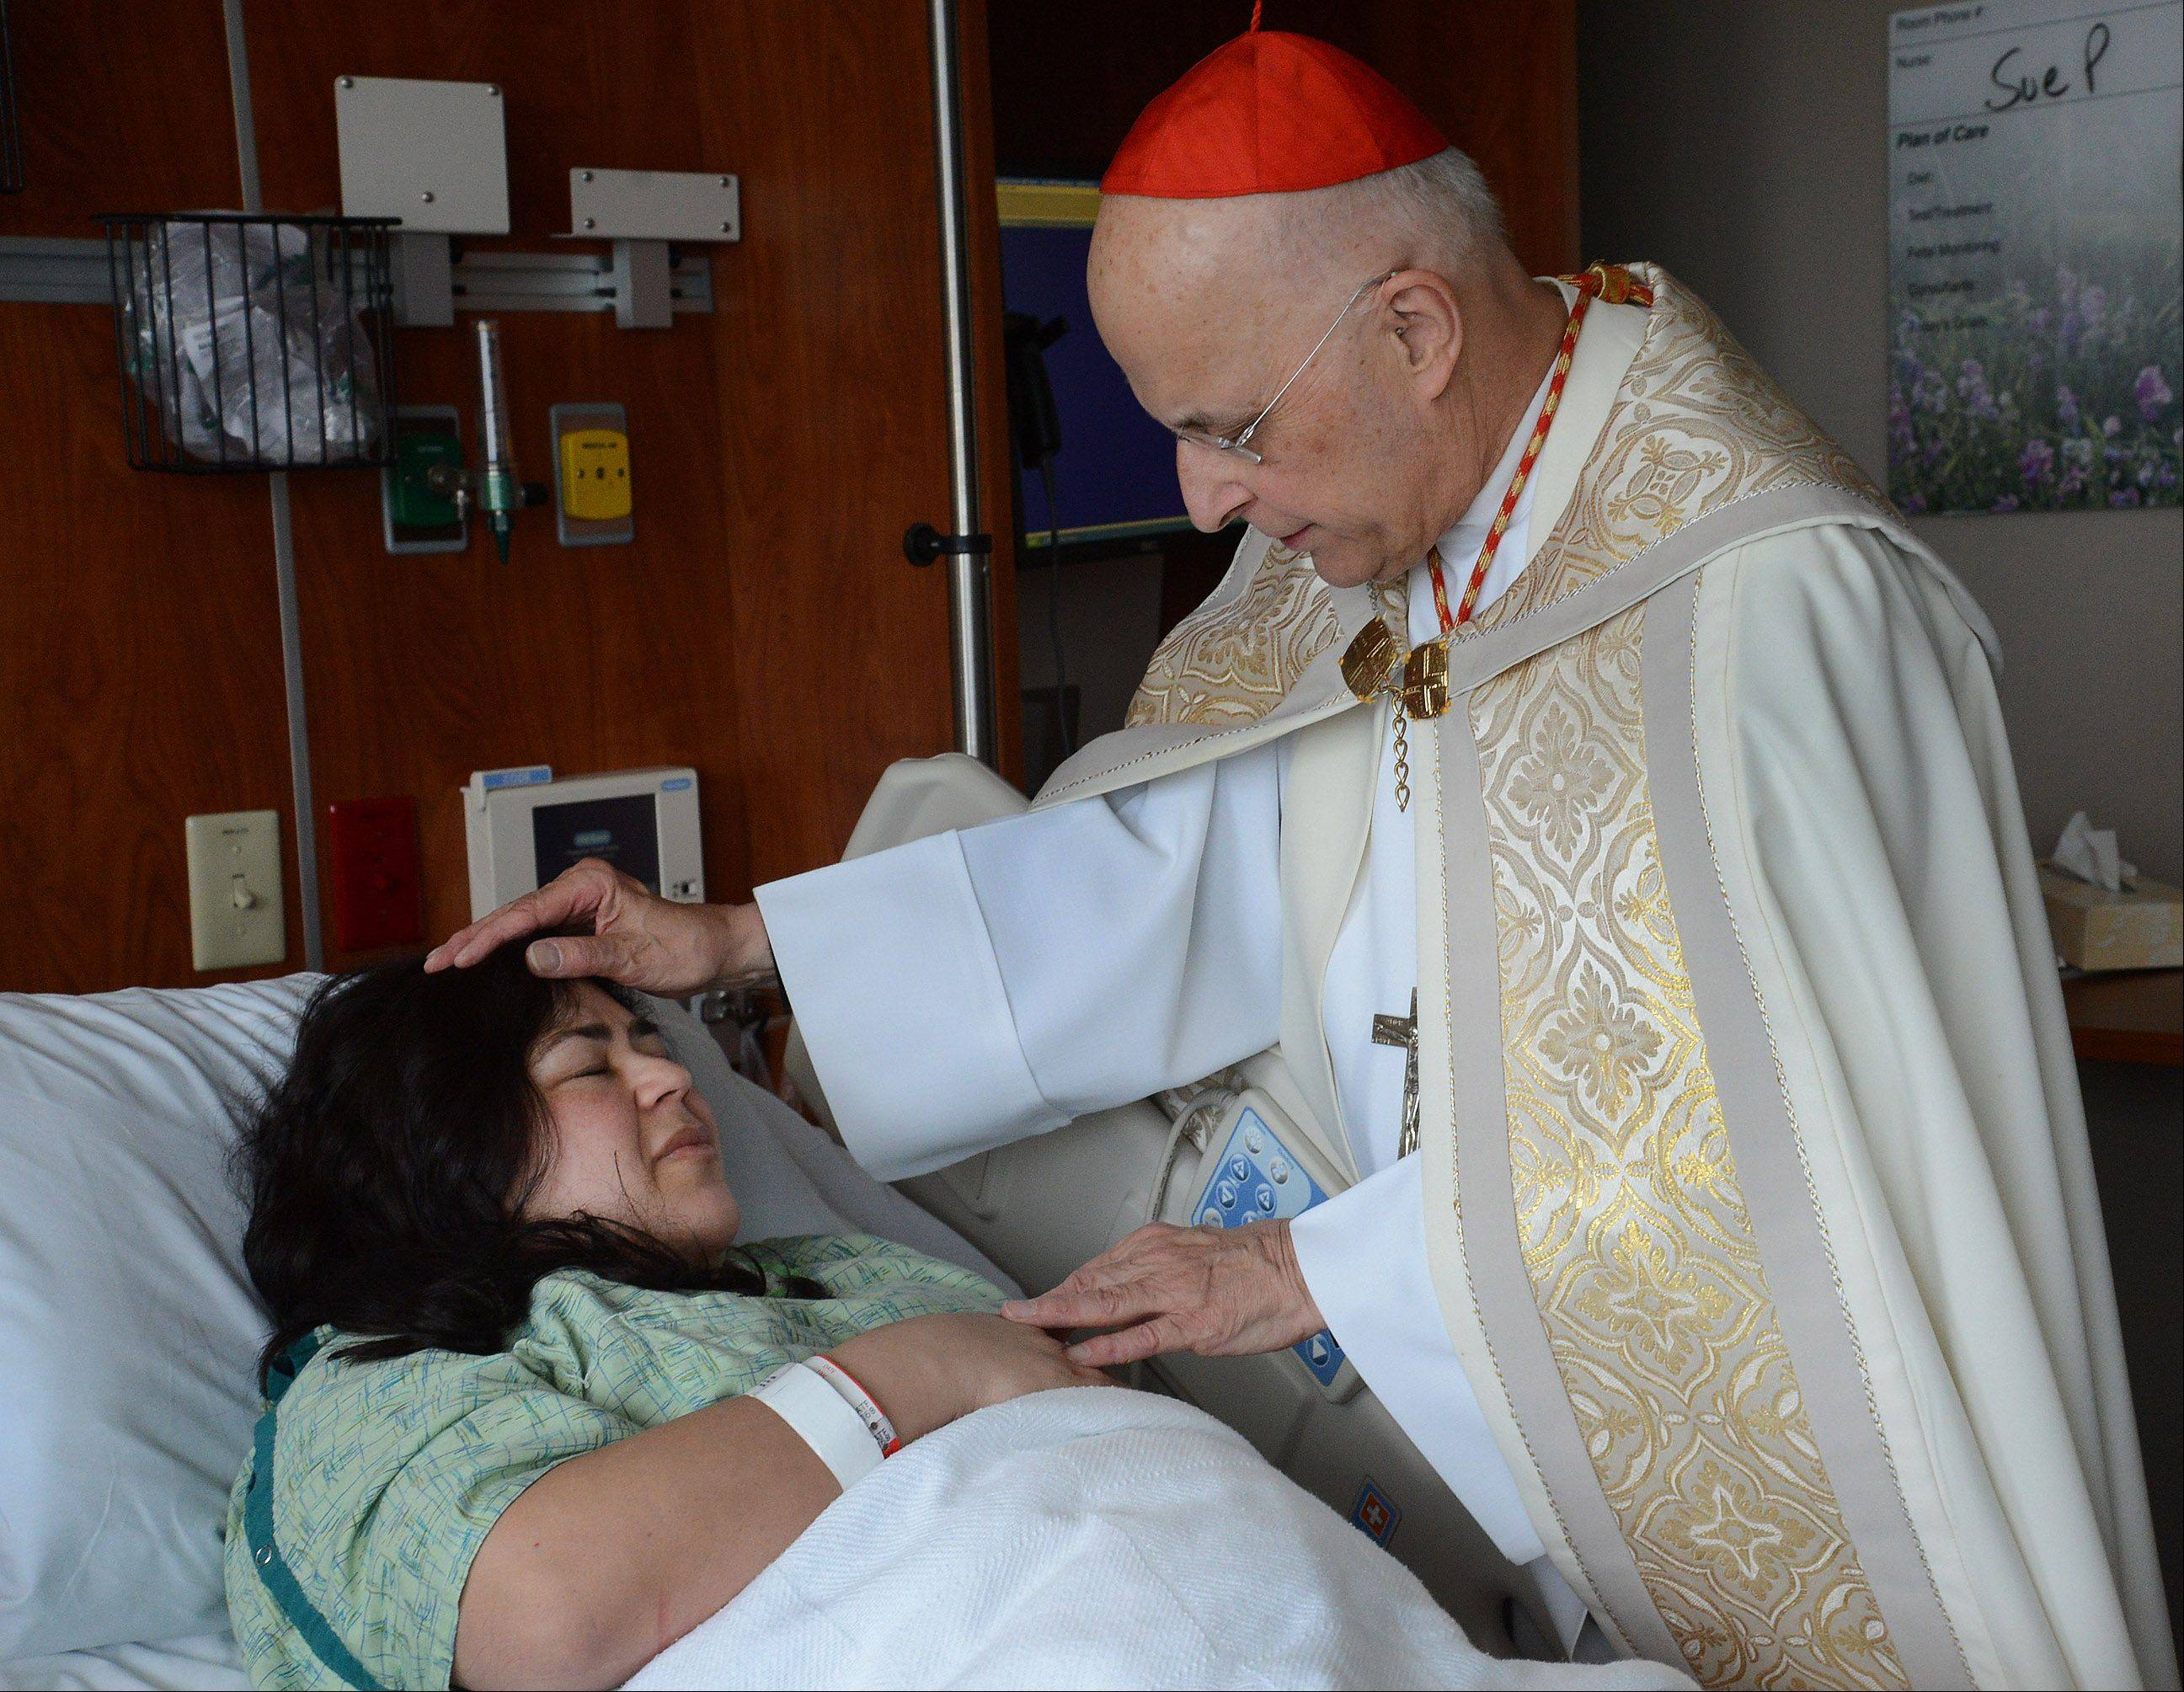 Maria Mora of Carpentersville receives a blessing as Francis Cardinal George blesses the staff, patients and families of the new Alexian Brothers Women and Children's Hospital in Hoffman Estates.